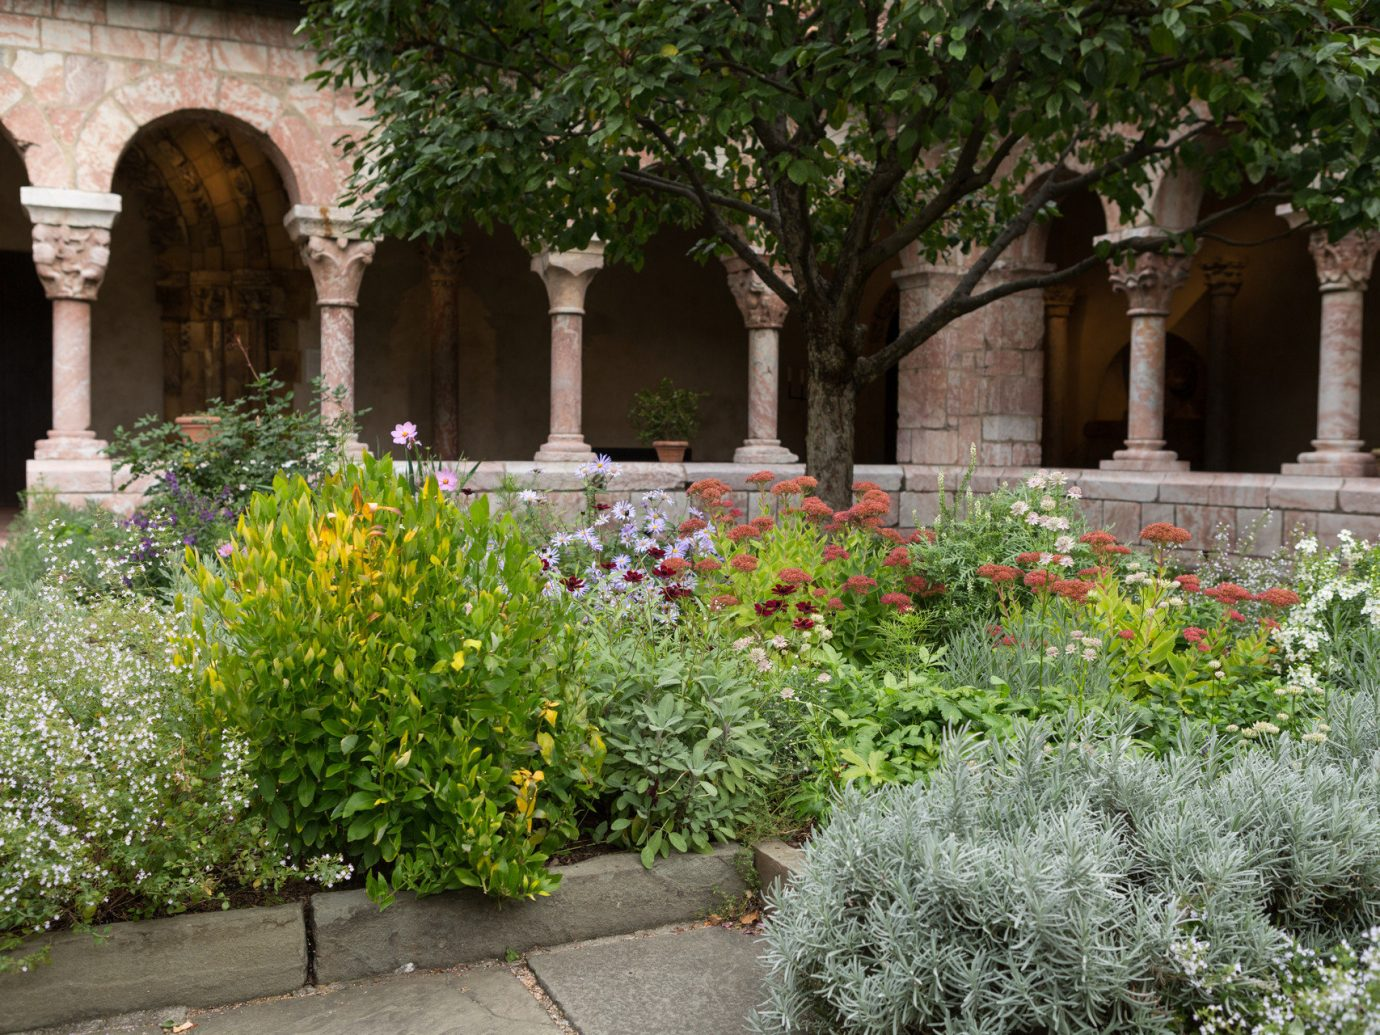 arch Architecture art Arts + Culture attraction Budget building calm Courtyard culture Exterior Garden Greenery Historic Museums serene trees outdoor flower botany yard estate backyard stone shrub lawn plant court bushes colonnade